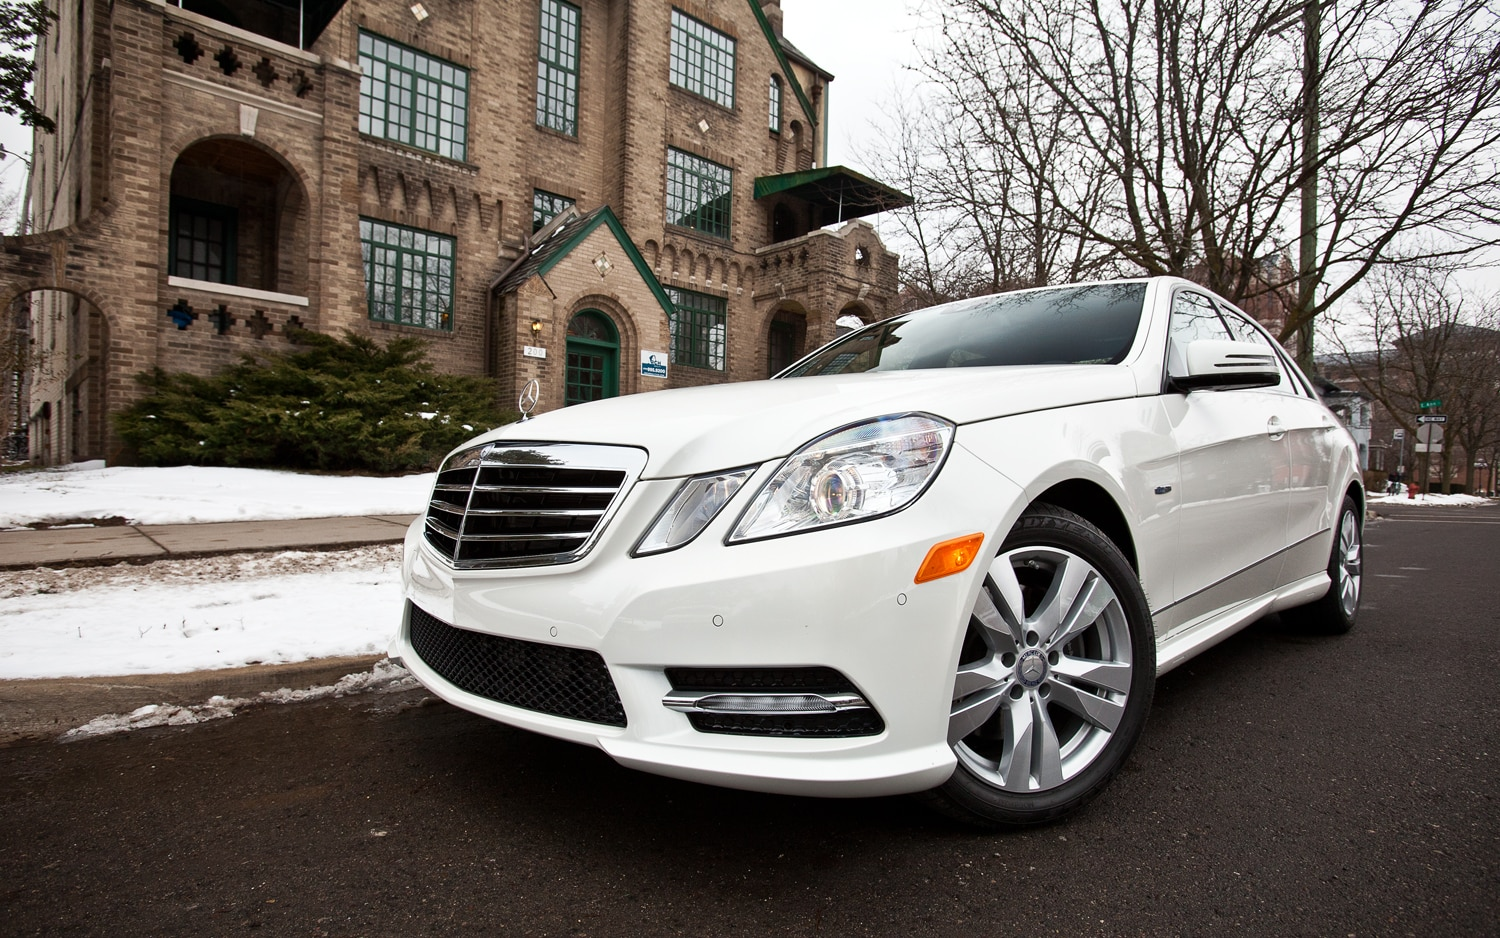 2012 Mercedes Benz E350 BlueTEC Front Left Side View 21